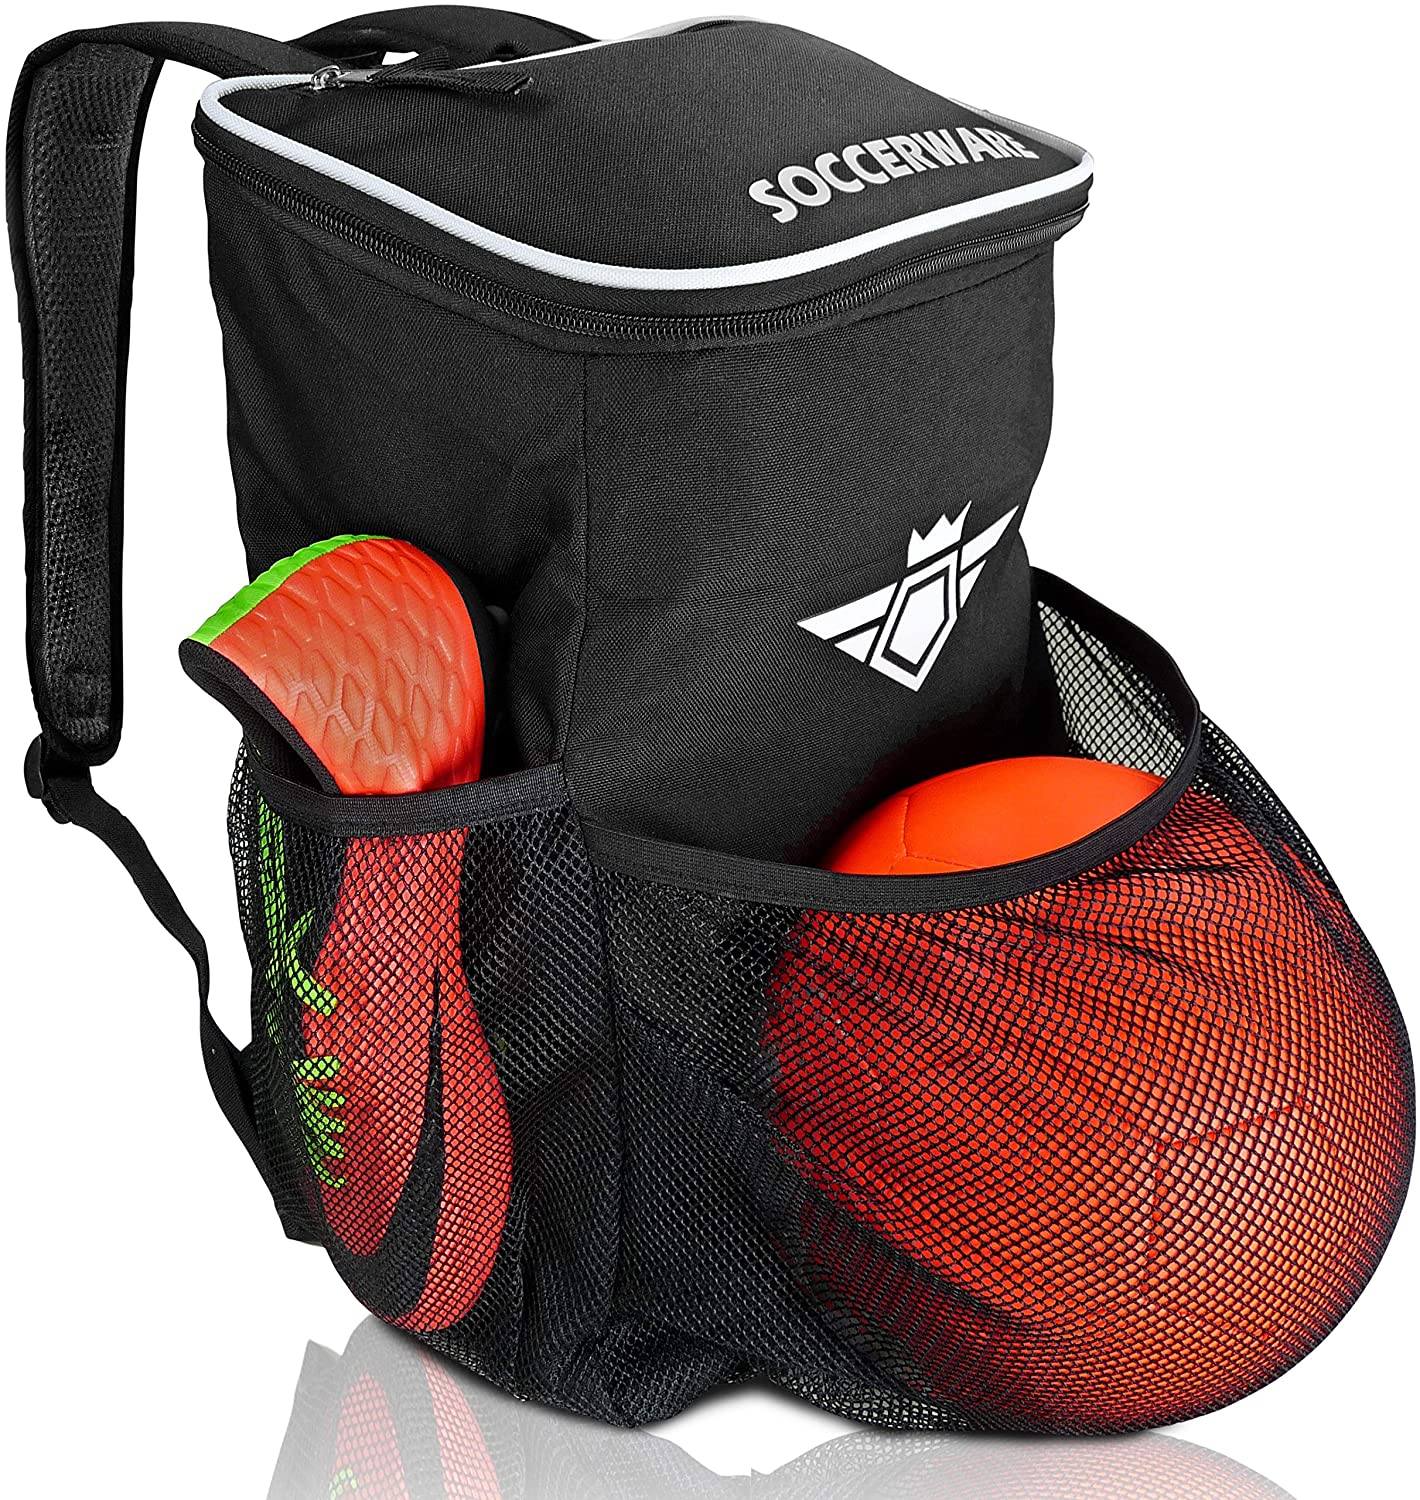 1117d977181 Amazon.com : Soccer Backpack with Ball Holder Compartment - for Boys &  Girls | Bag Fits All Soccer Equipment & Gym Gear (Black) : Sports & Outdoors